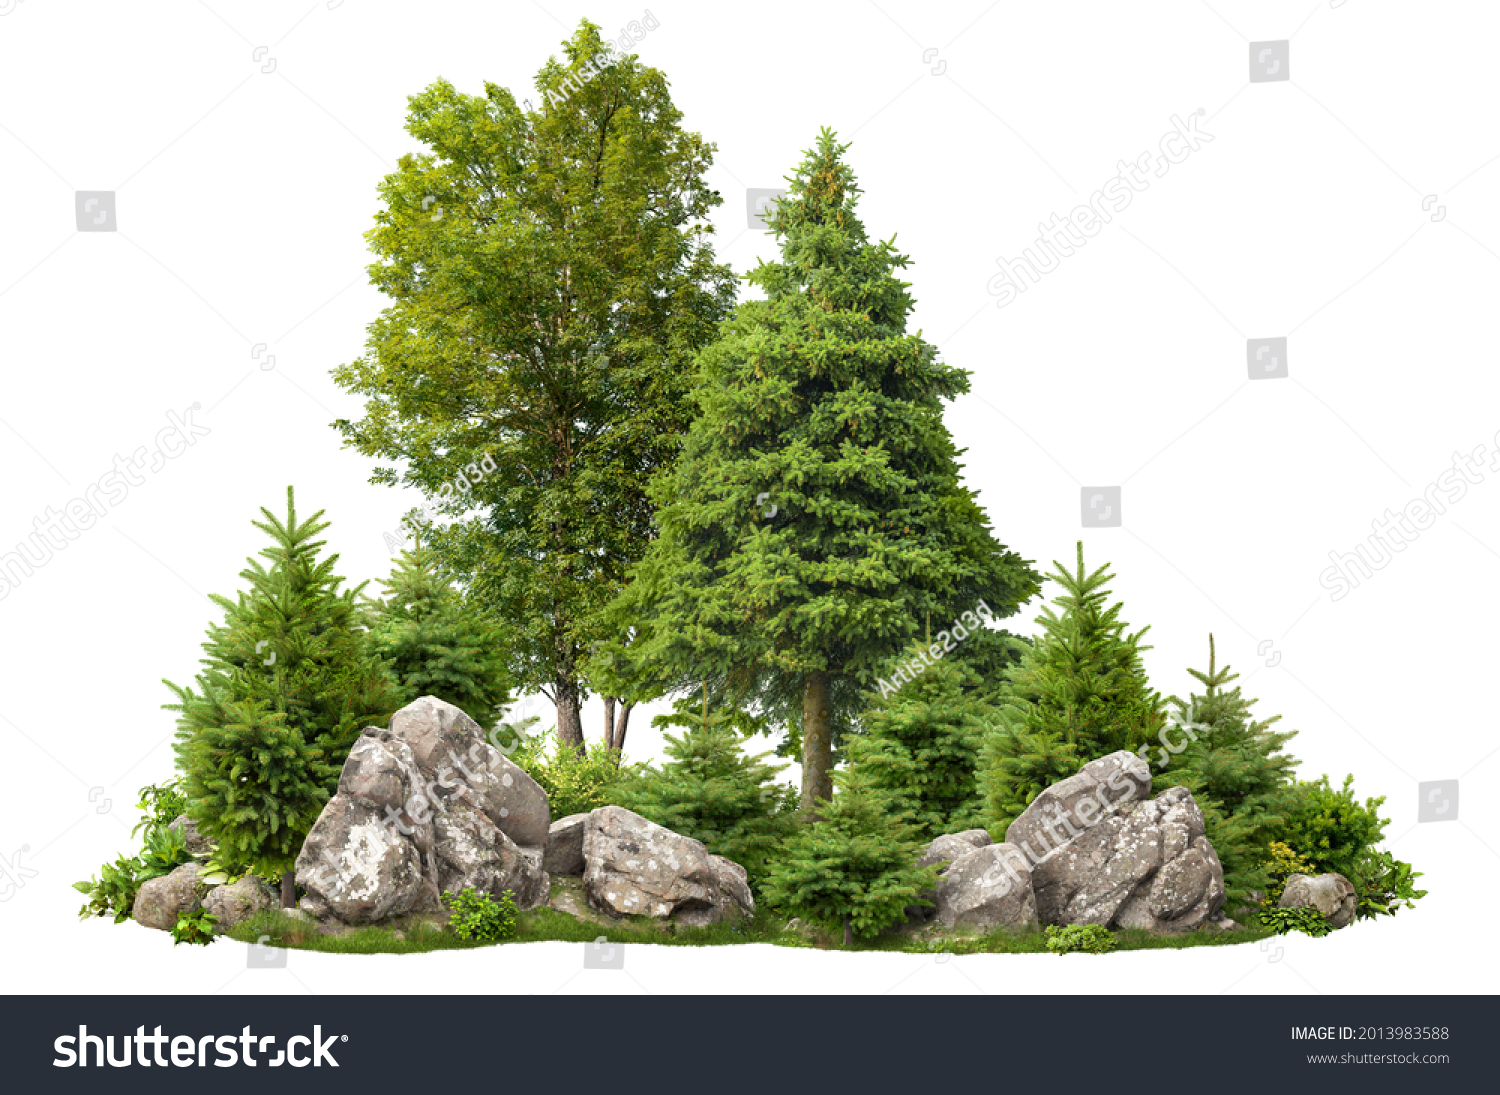 Cutout rock surrounded by fir trees. Garden design isolated on white background. Decorative shrub for landscaping. High quality clipping mask for professionnal composition. Stones in the forest. #2013983588